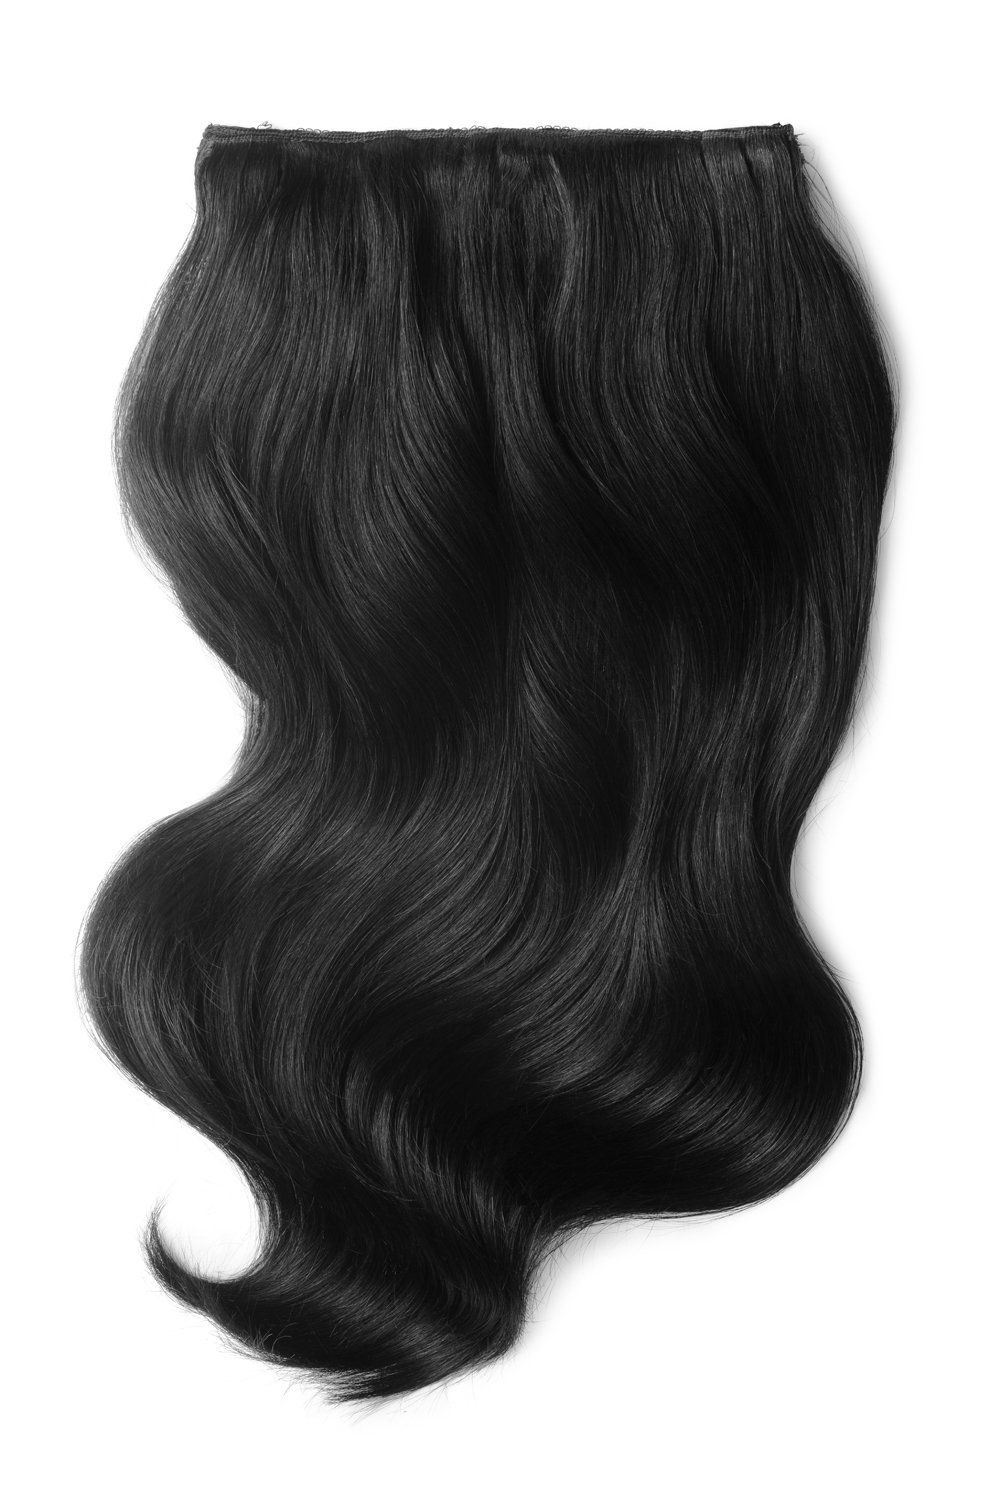 Double Wefted Full Head Remy Clip in Human Hair Extensions